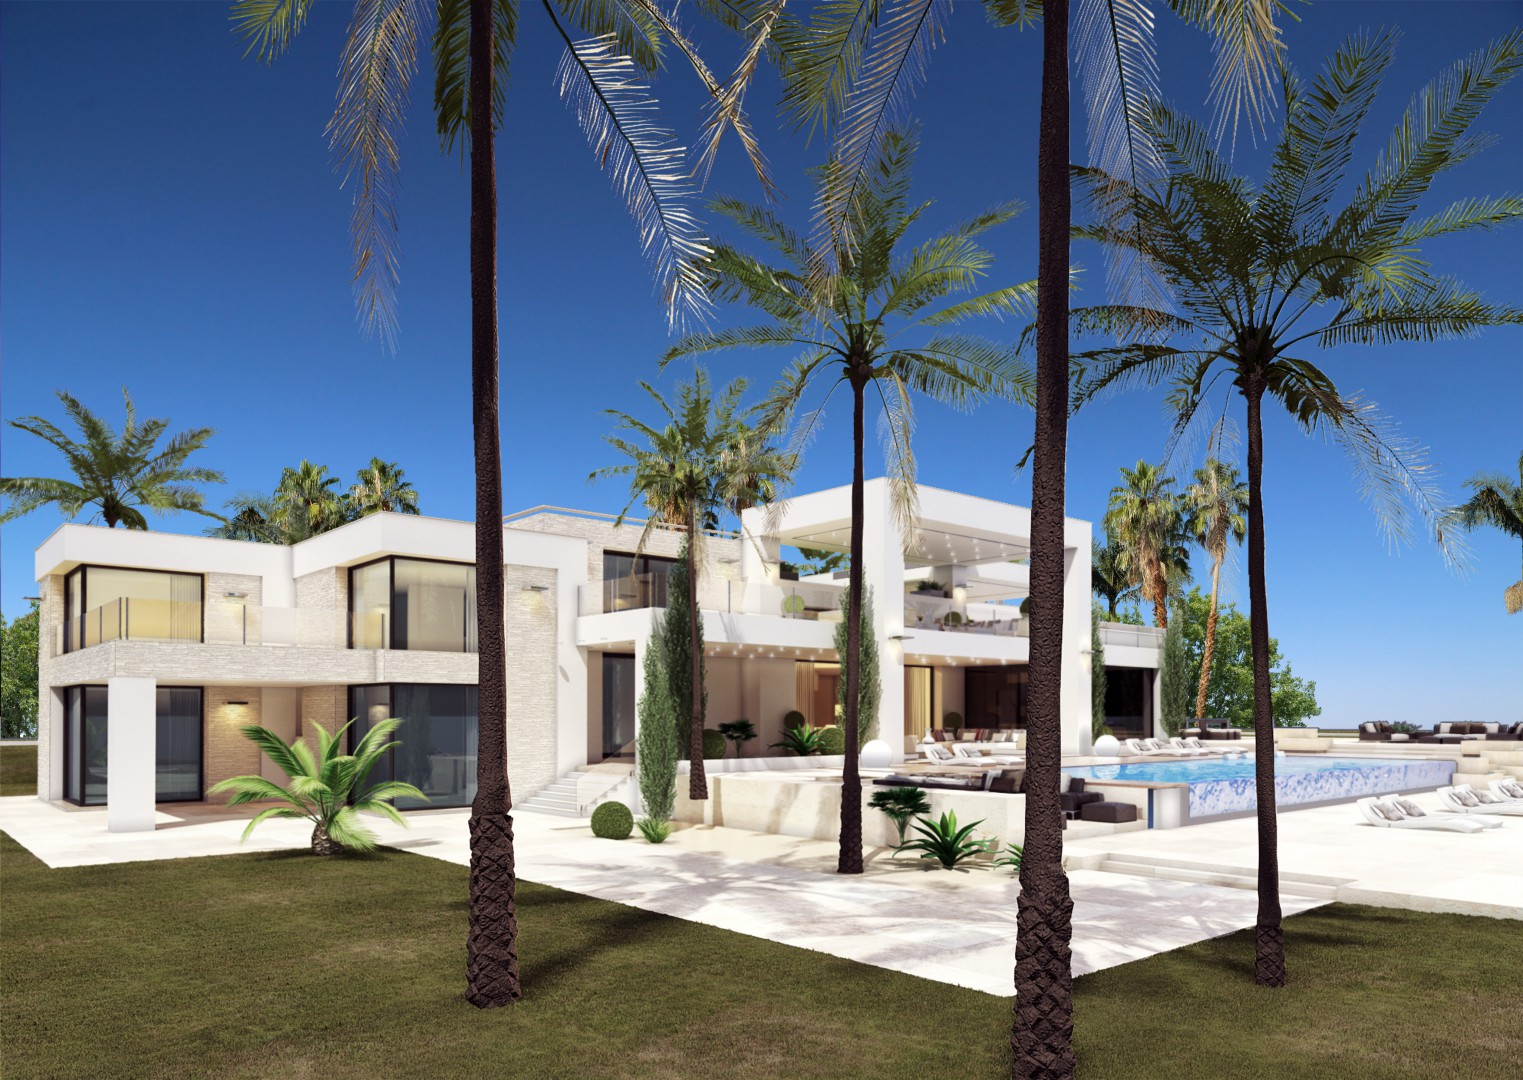 단독 가정 주택 용 매매 에 A truly jewel of villa at beachfront New Golden Mile Estepona, Costa Del Sol 29680 스페인